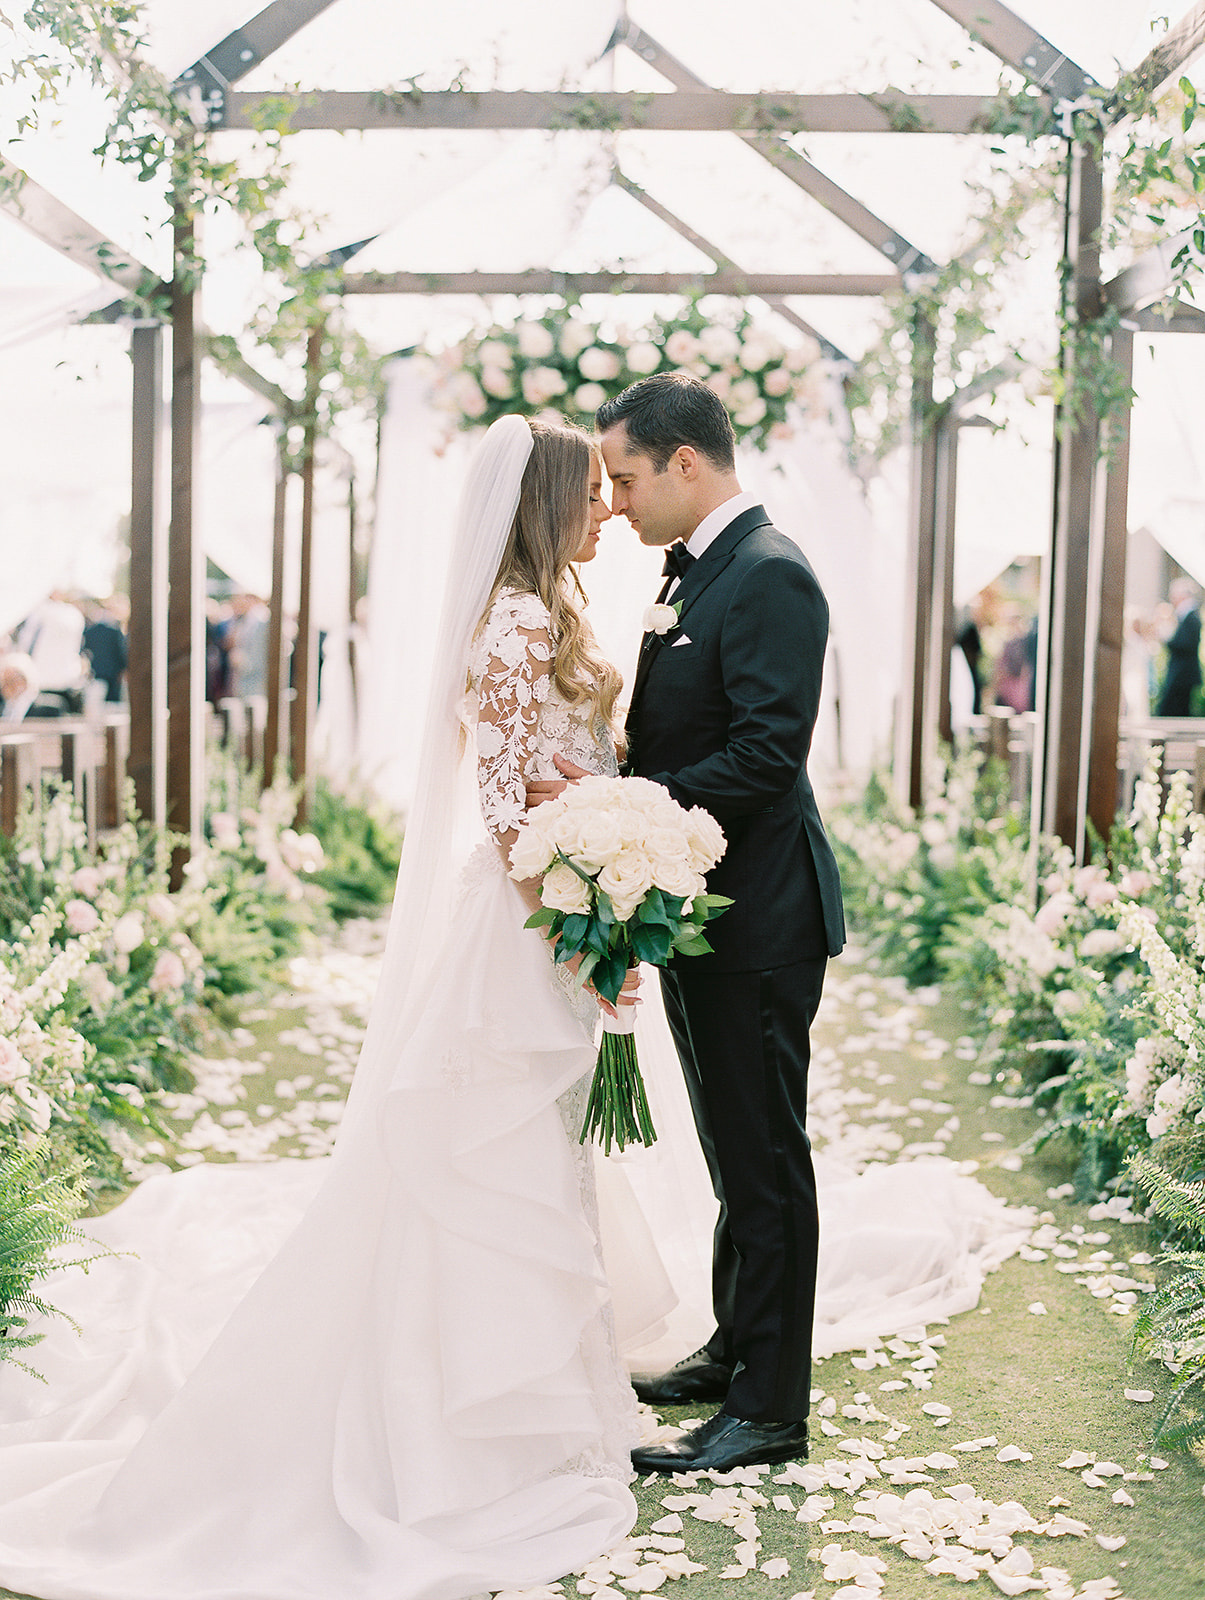 couple portrait in wedding ceremony aisle with flower petals on the ground